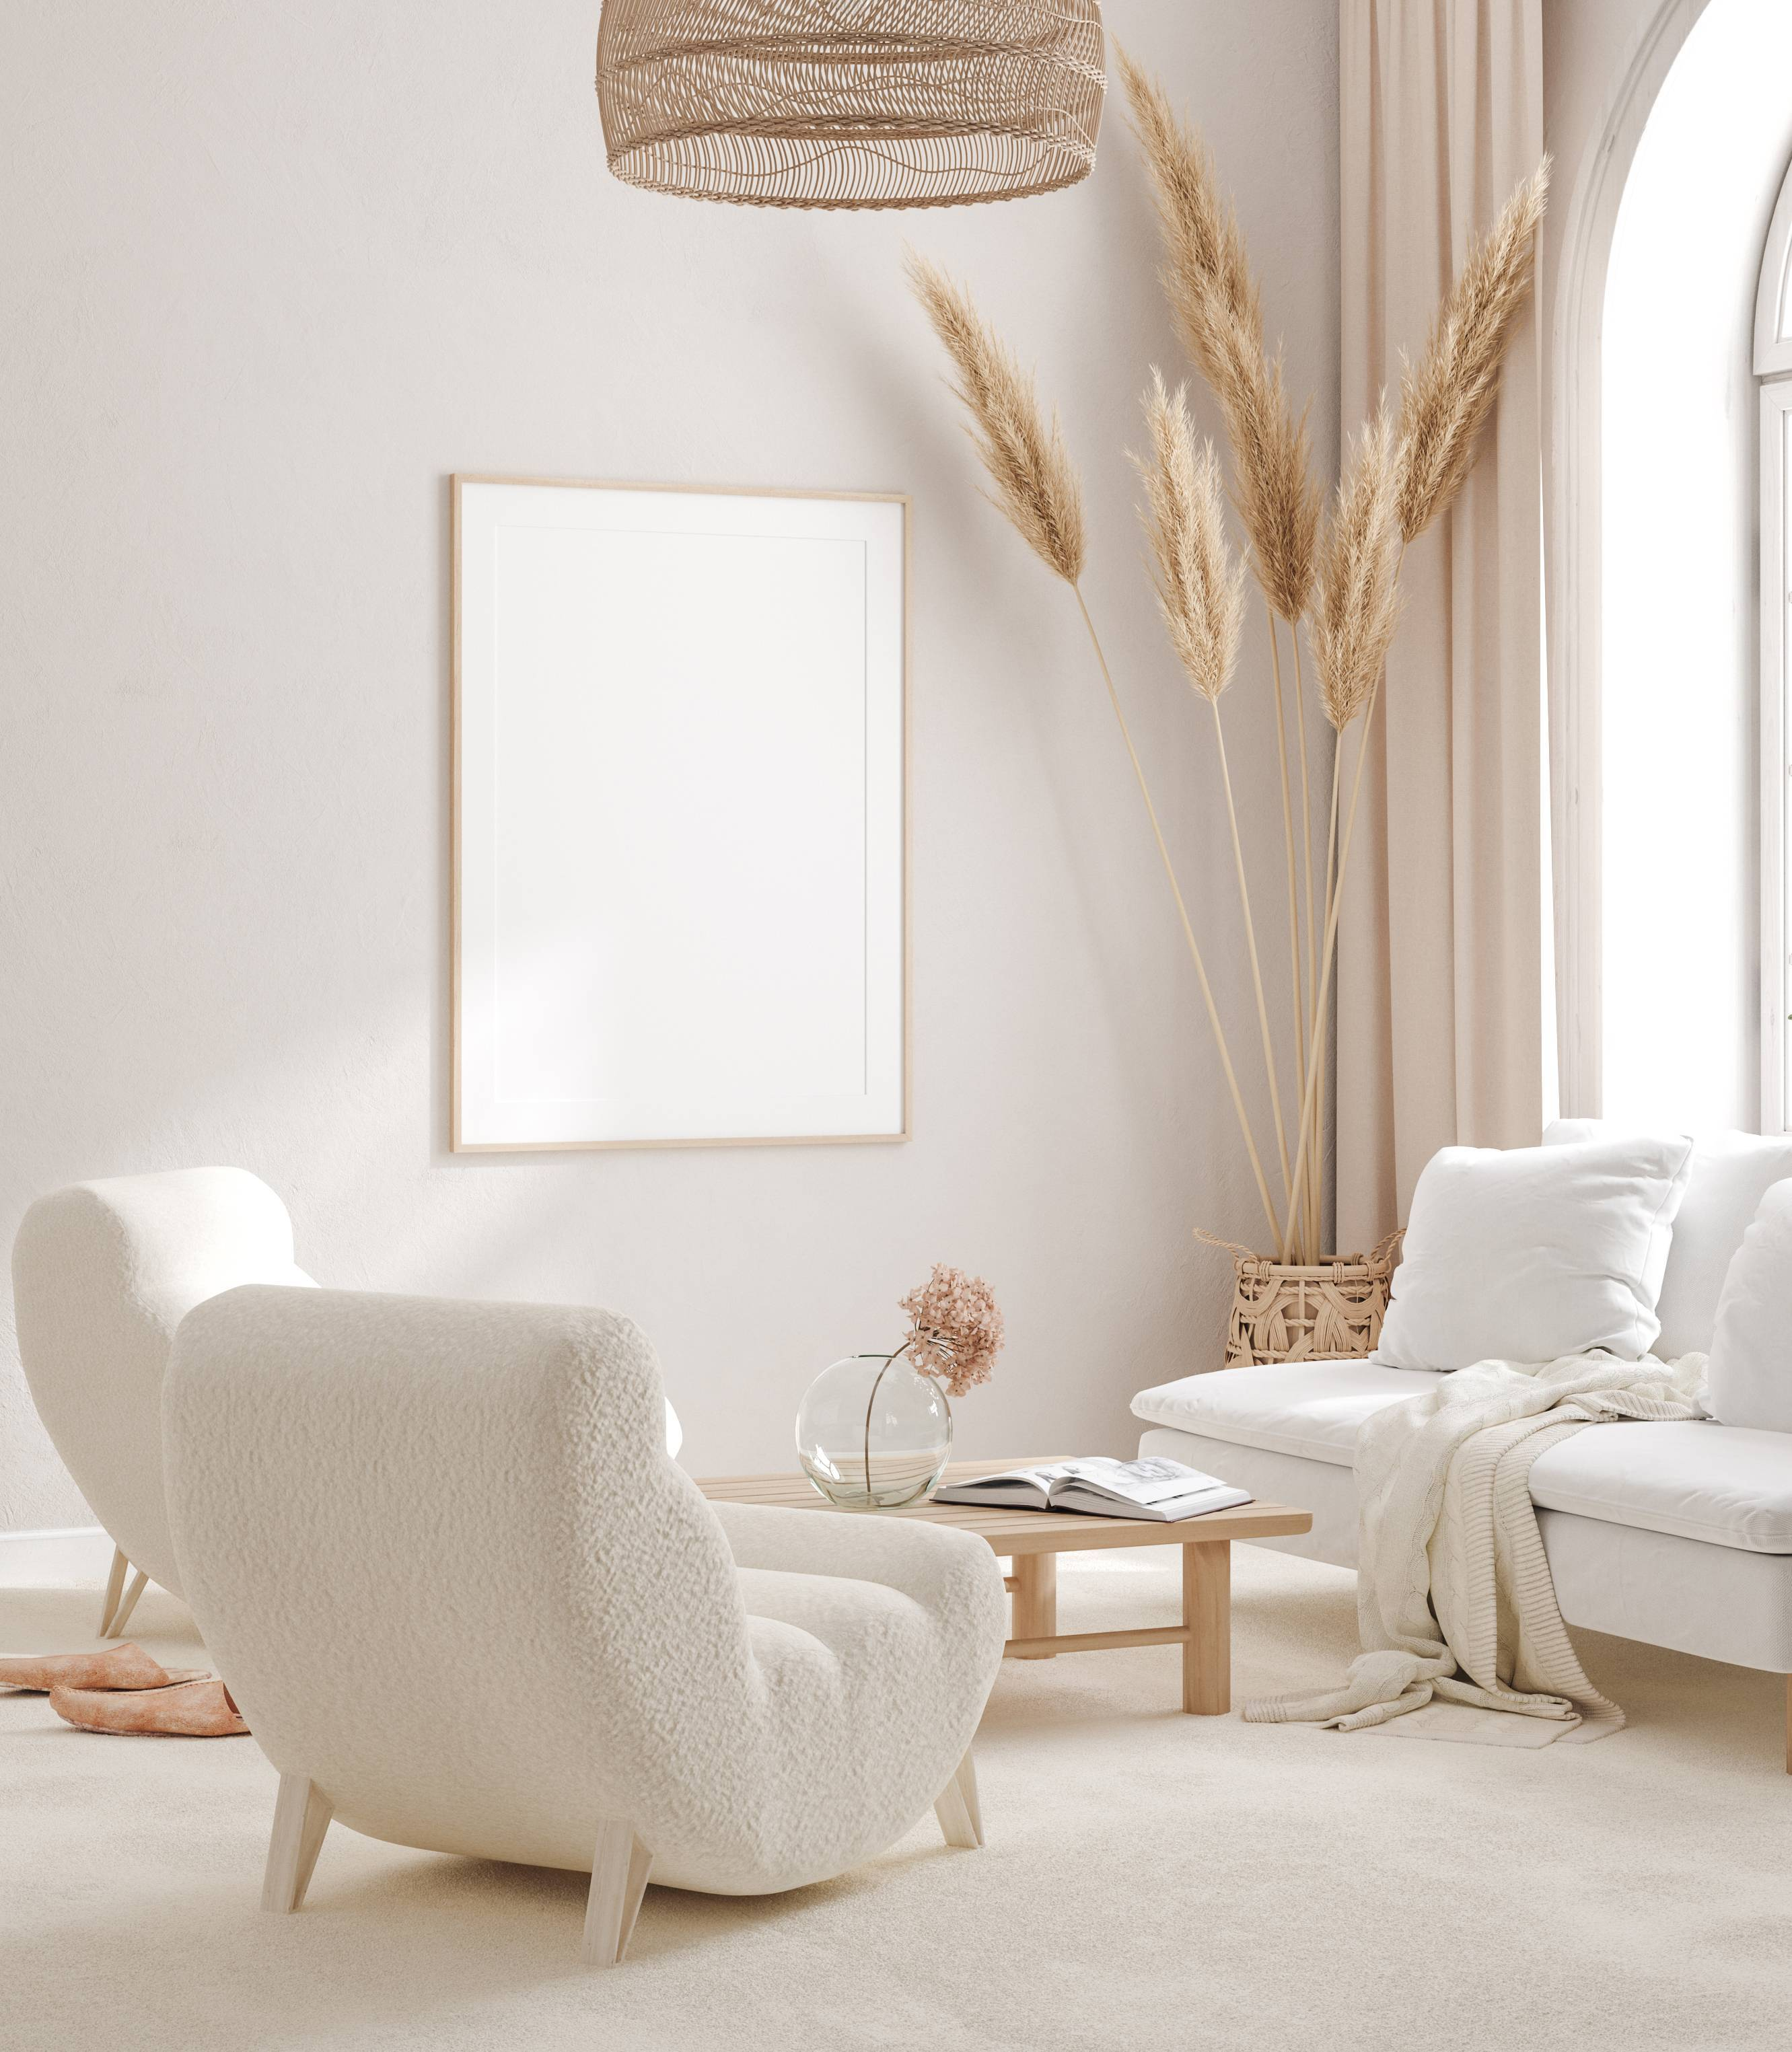 fauteuil deco roly poly